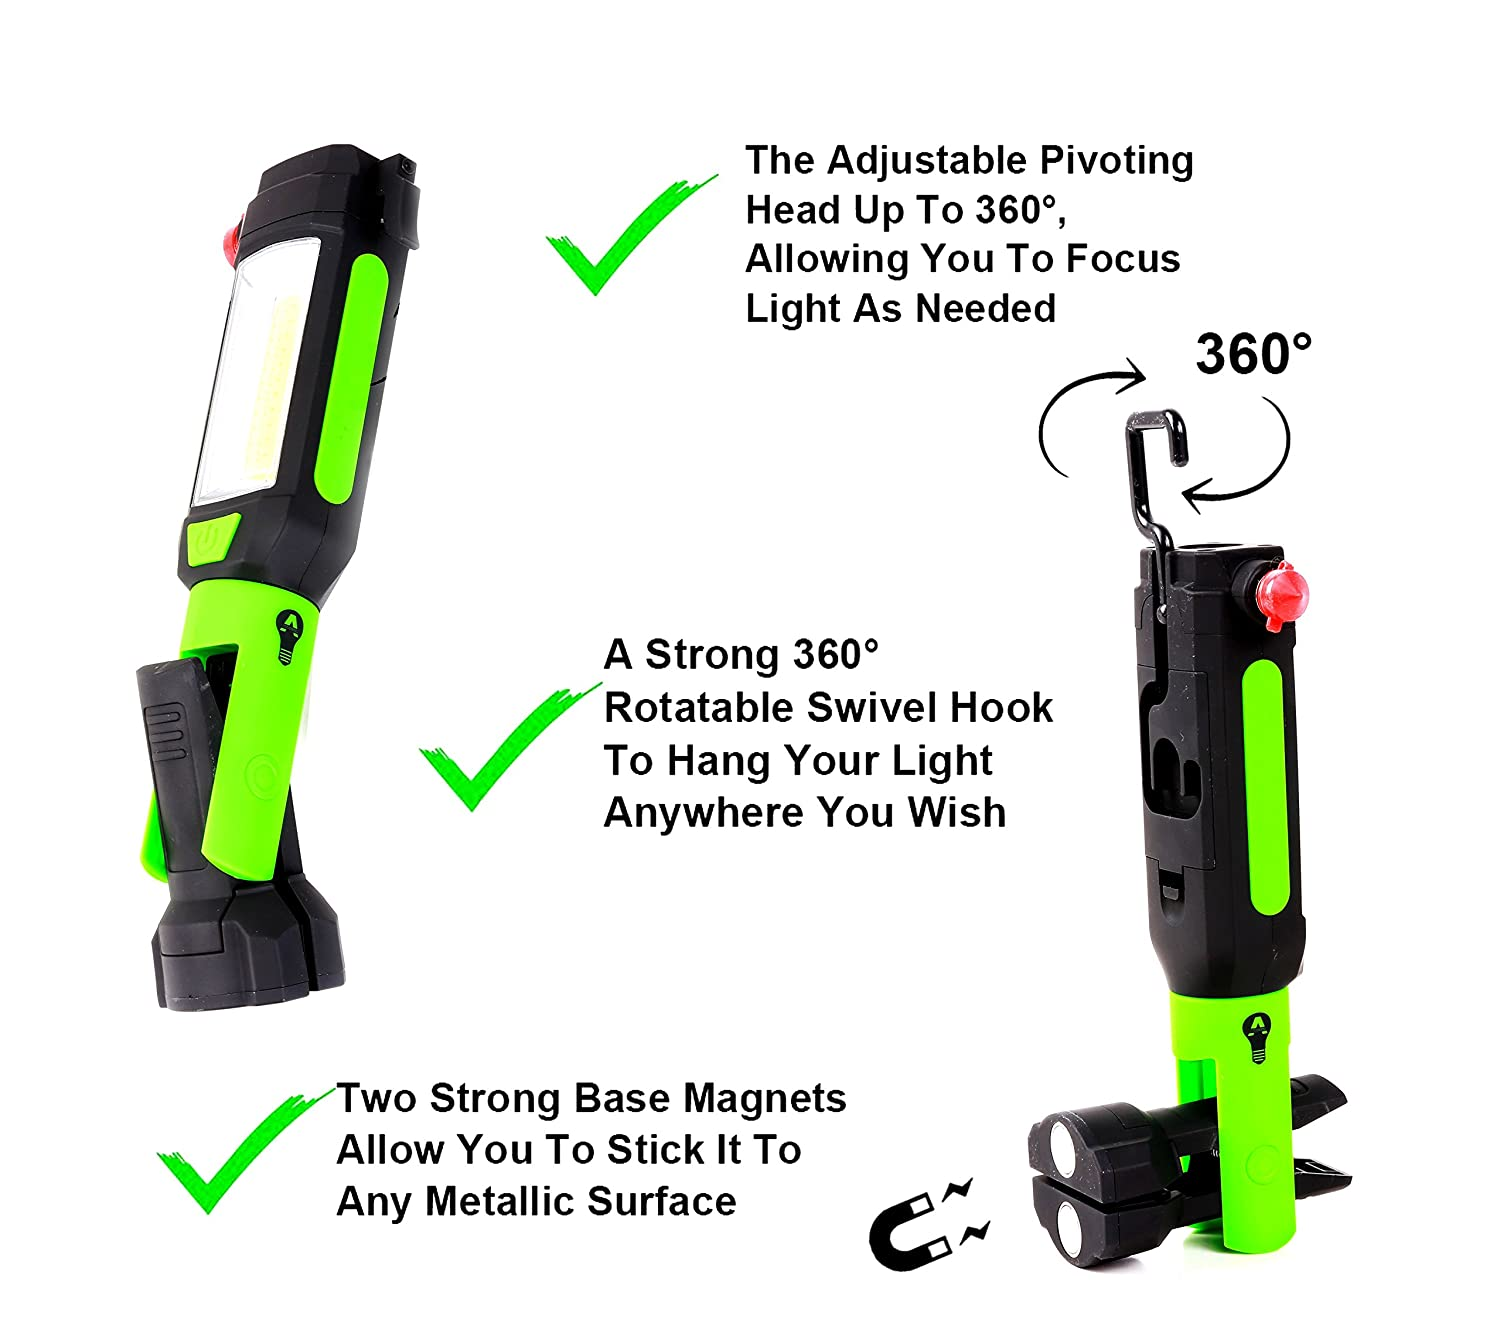 Car Safety Hammer Life Saving Survival Kit Batteries Included 【2019 New Version】Lifesaver Emergency Car LED Flashlight Emergency Escape Tool with Car Window Breaker and Seat Belt Cutter